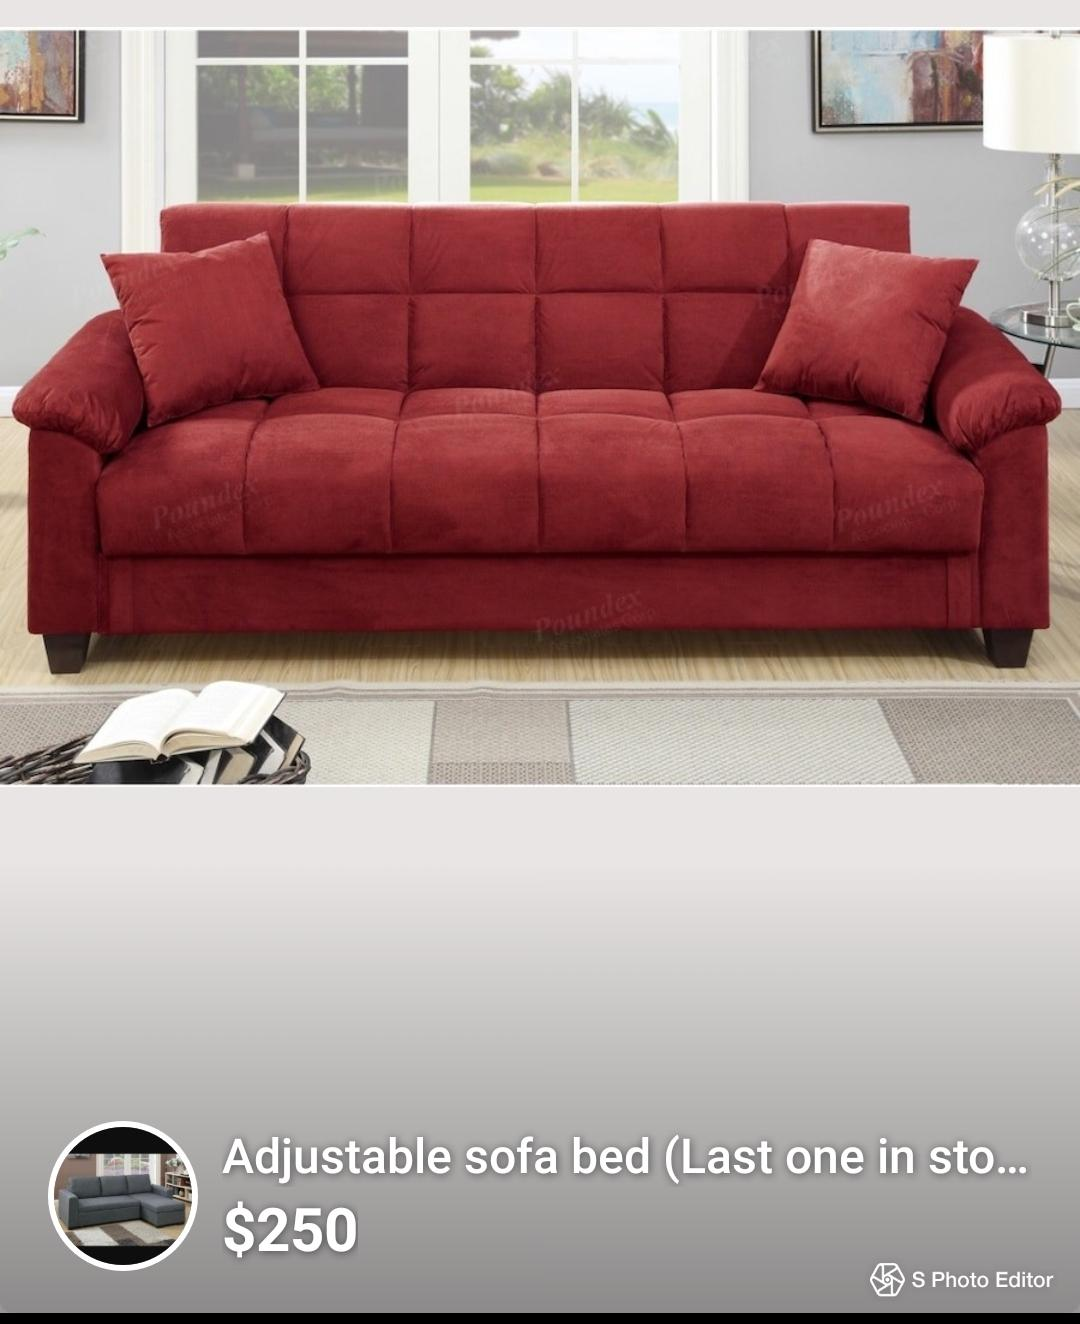 Brand new red sofa bed.